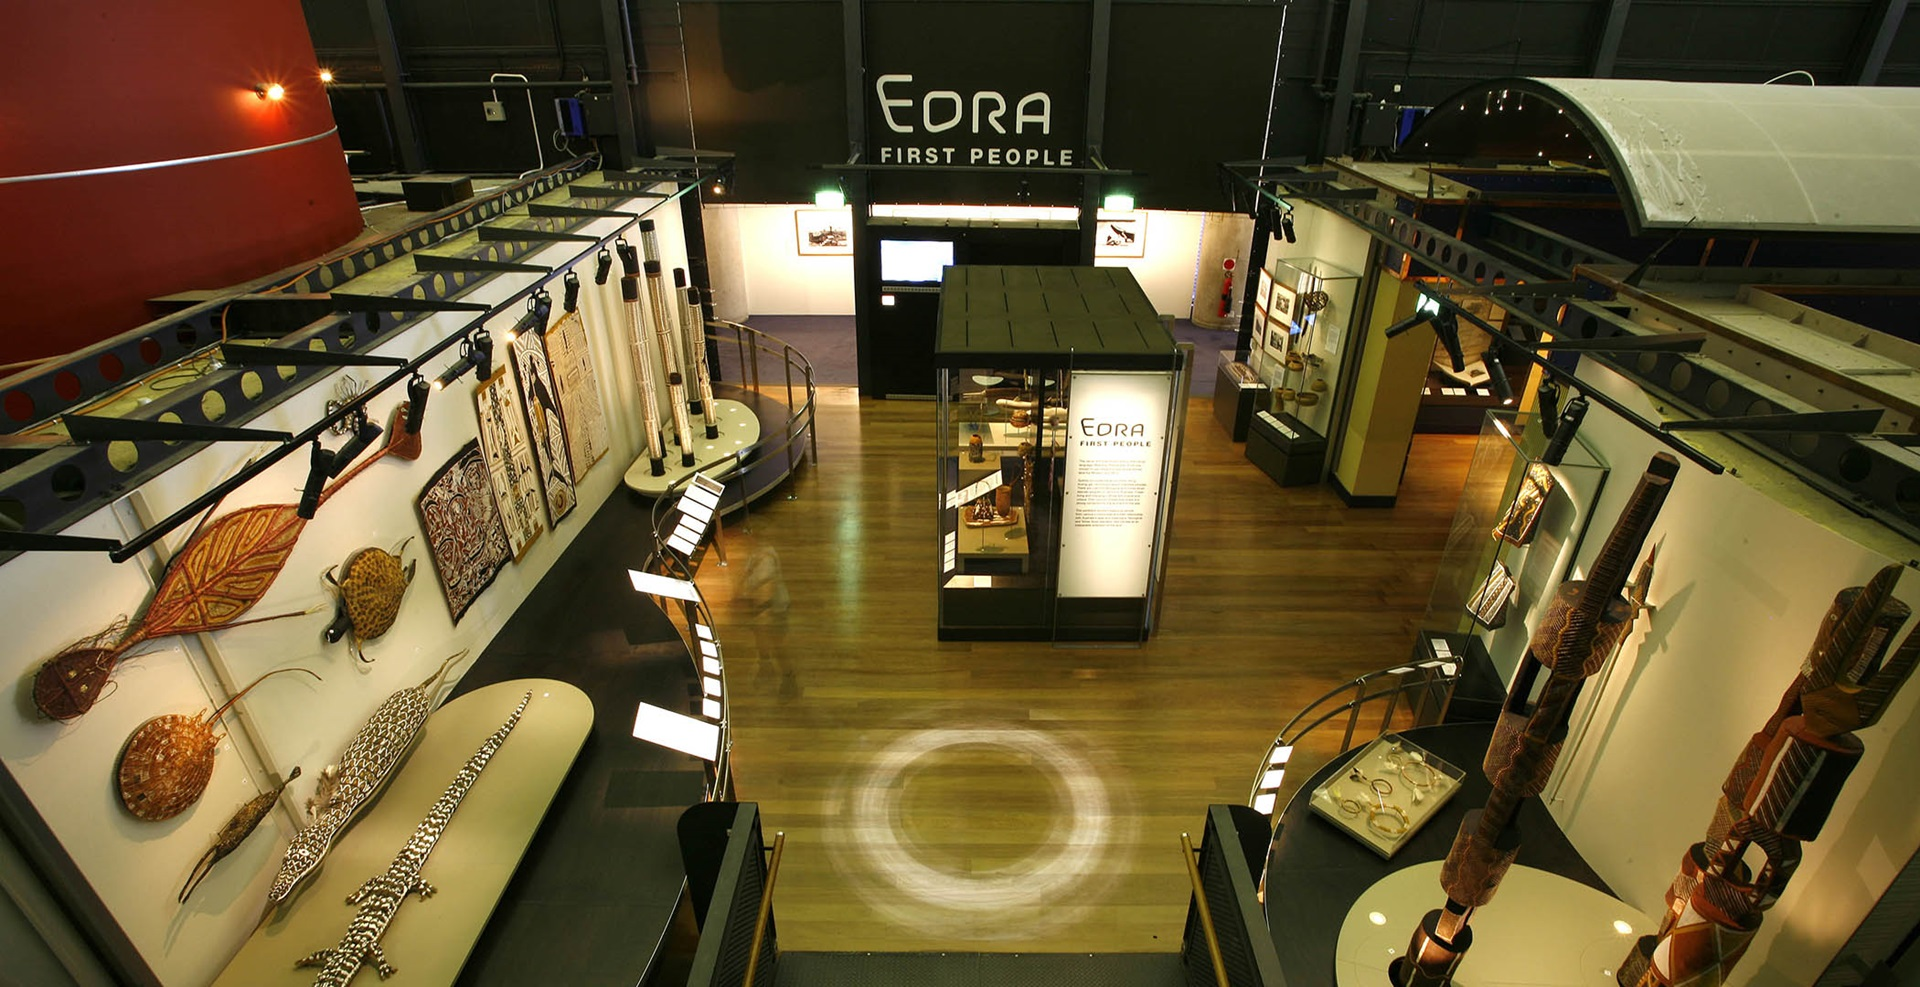 Birds-eye view of the Eora First People exhibition space at the museum